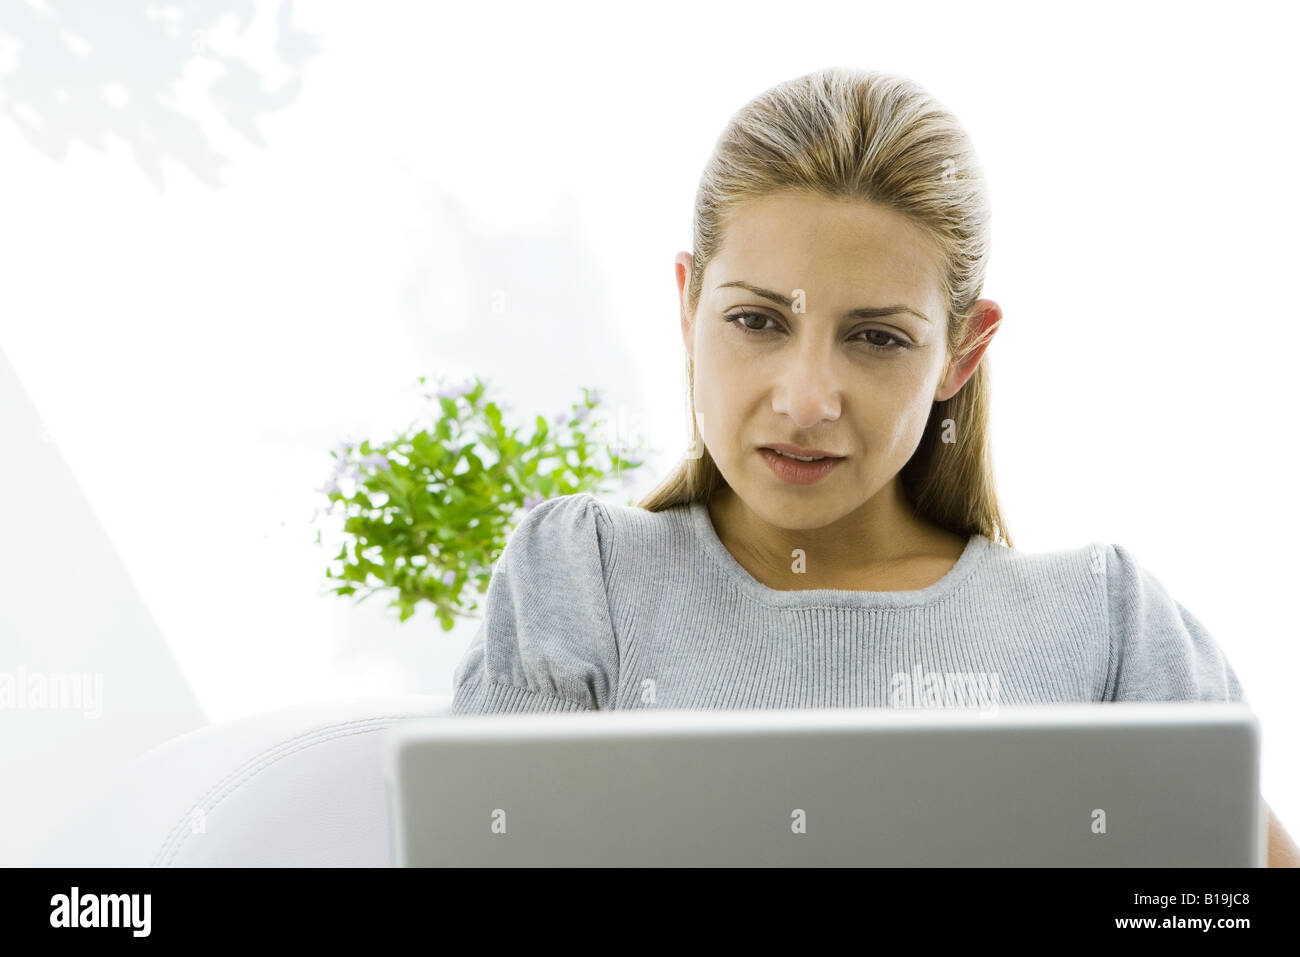 Woman intently looking at laptop, cropped - Stock Image